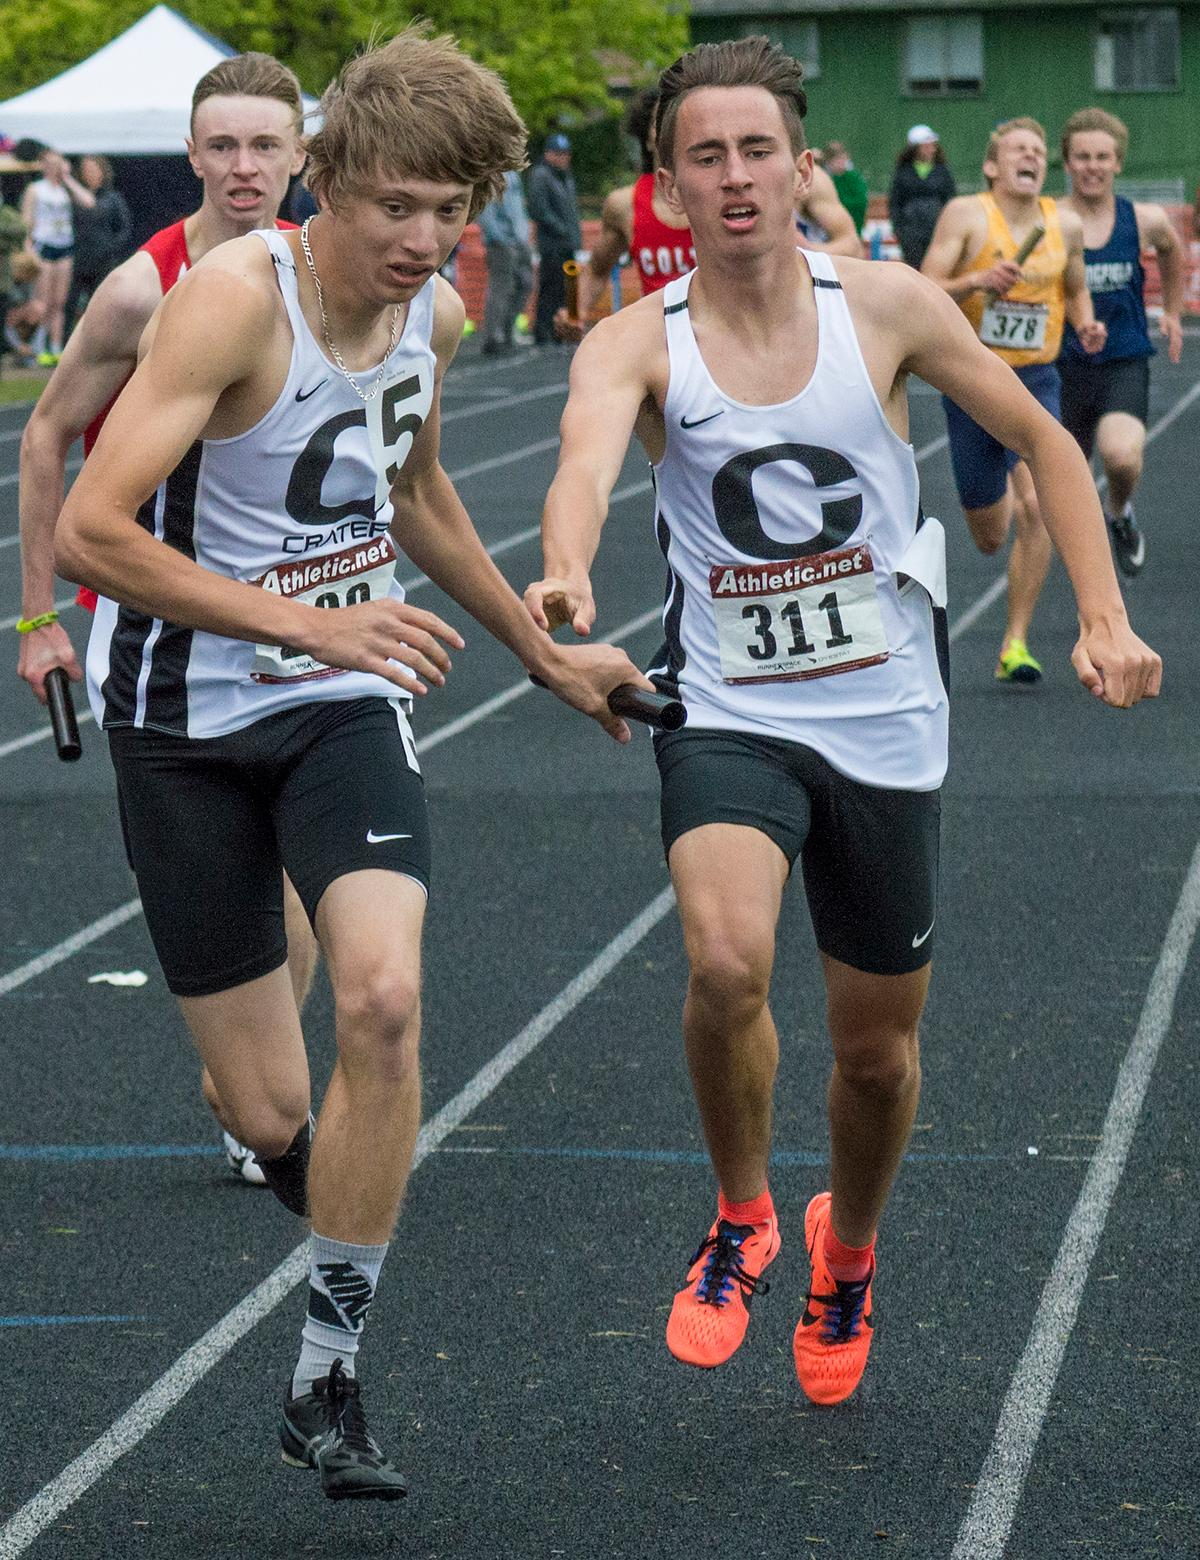 Crater High School's Ryland McCullough passes the baton to anchor Cal Duke in the Men's 4 x 400m event. The Comets took first place in the event at the 5A-3 Midwestern League District Championship with a time of 3:28.91. Photo by Emily Gonzalez, Oregon News Lab.